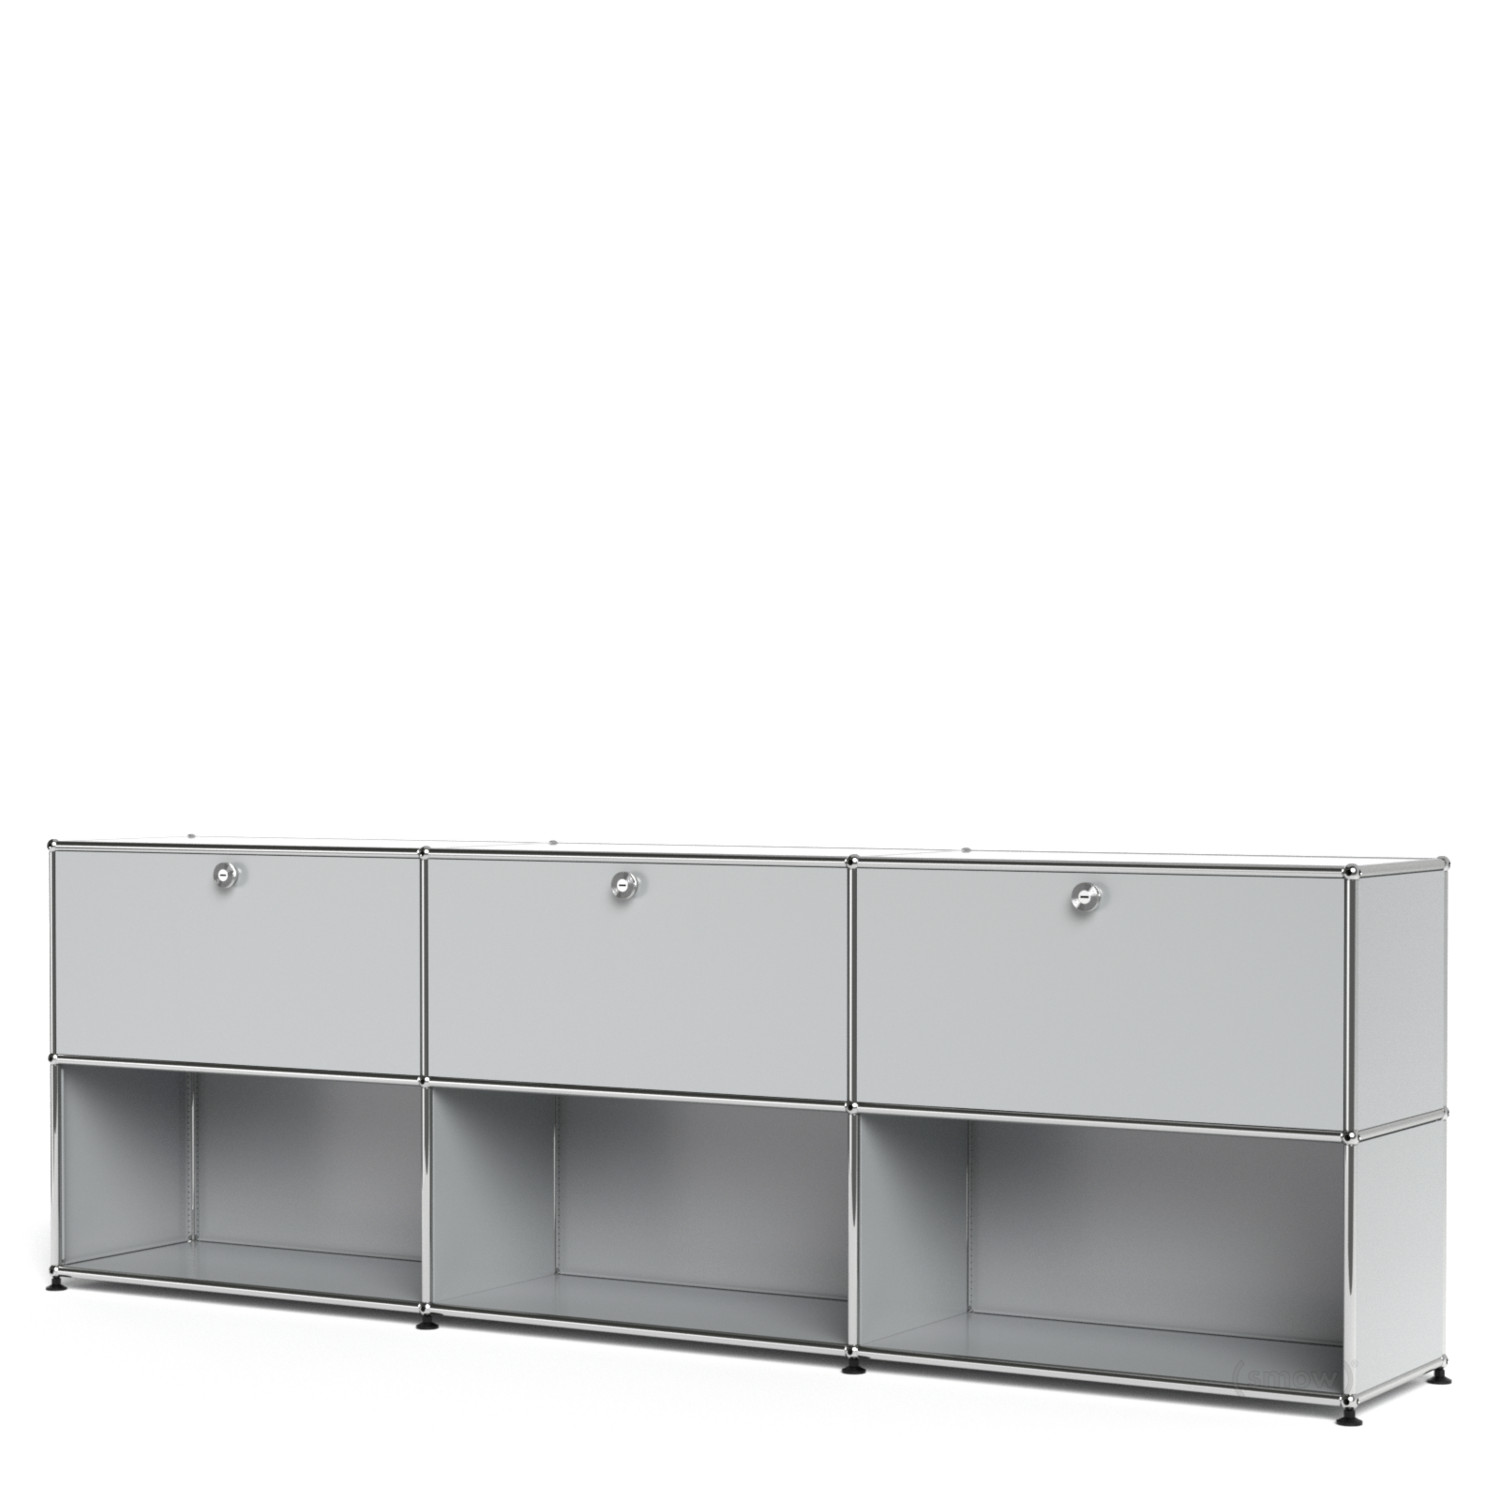 usm haller sideboard xl customisable light grey ral 7035. Black Bedroom Furniture Sets. Home Design Ideas